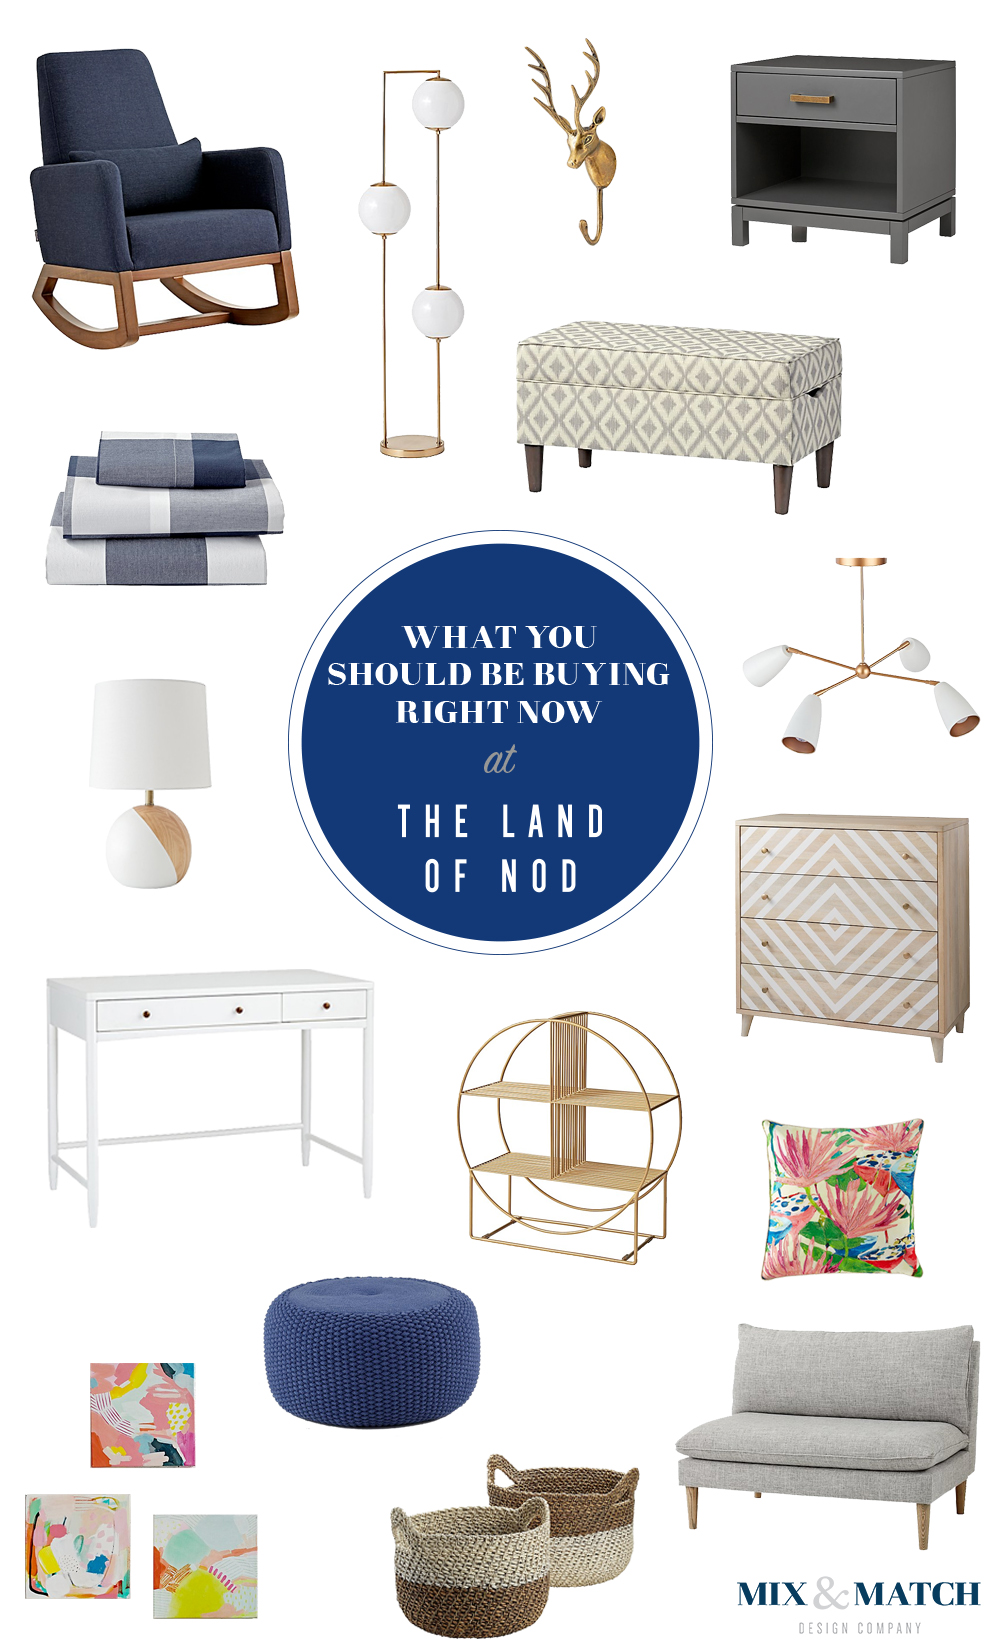 Kids stores aren't just for kids! The Land Of Nod has PLENTY of pieces that fit beautifully into grown-up spaces. Shop these pieces on the blog. // land of nod, land of nod furniture, land of nod decor